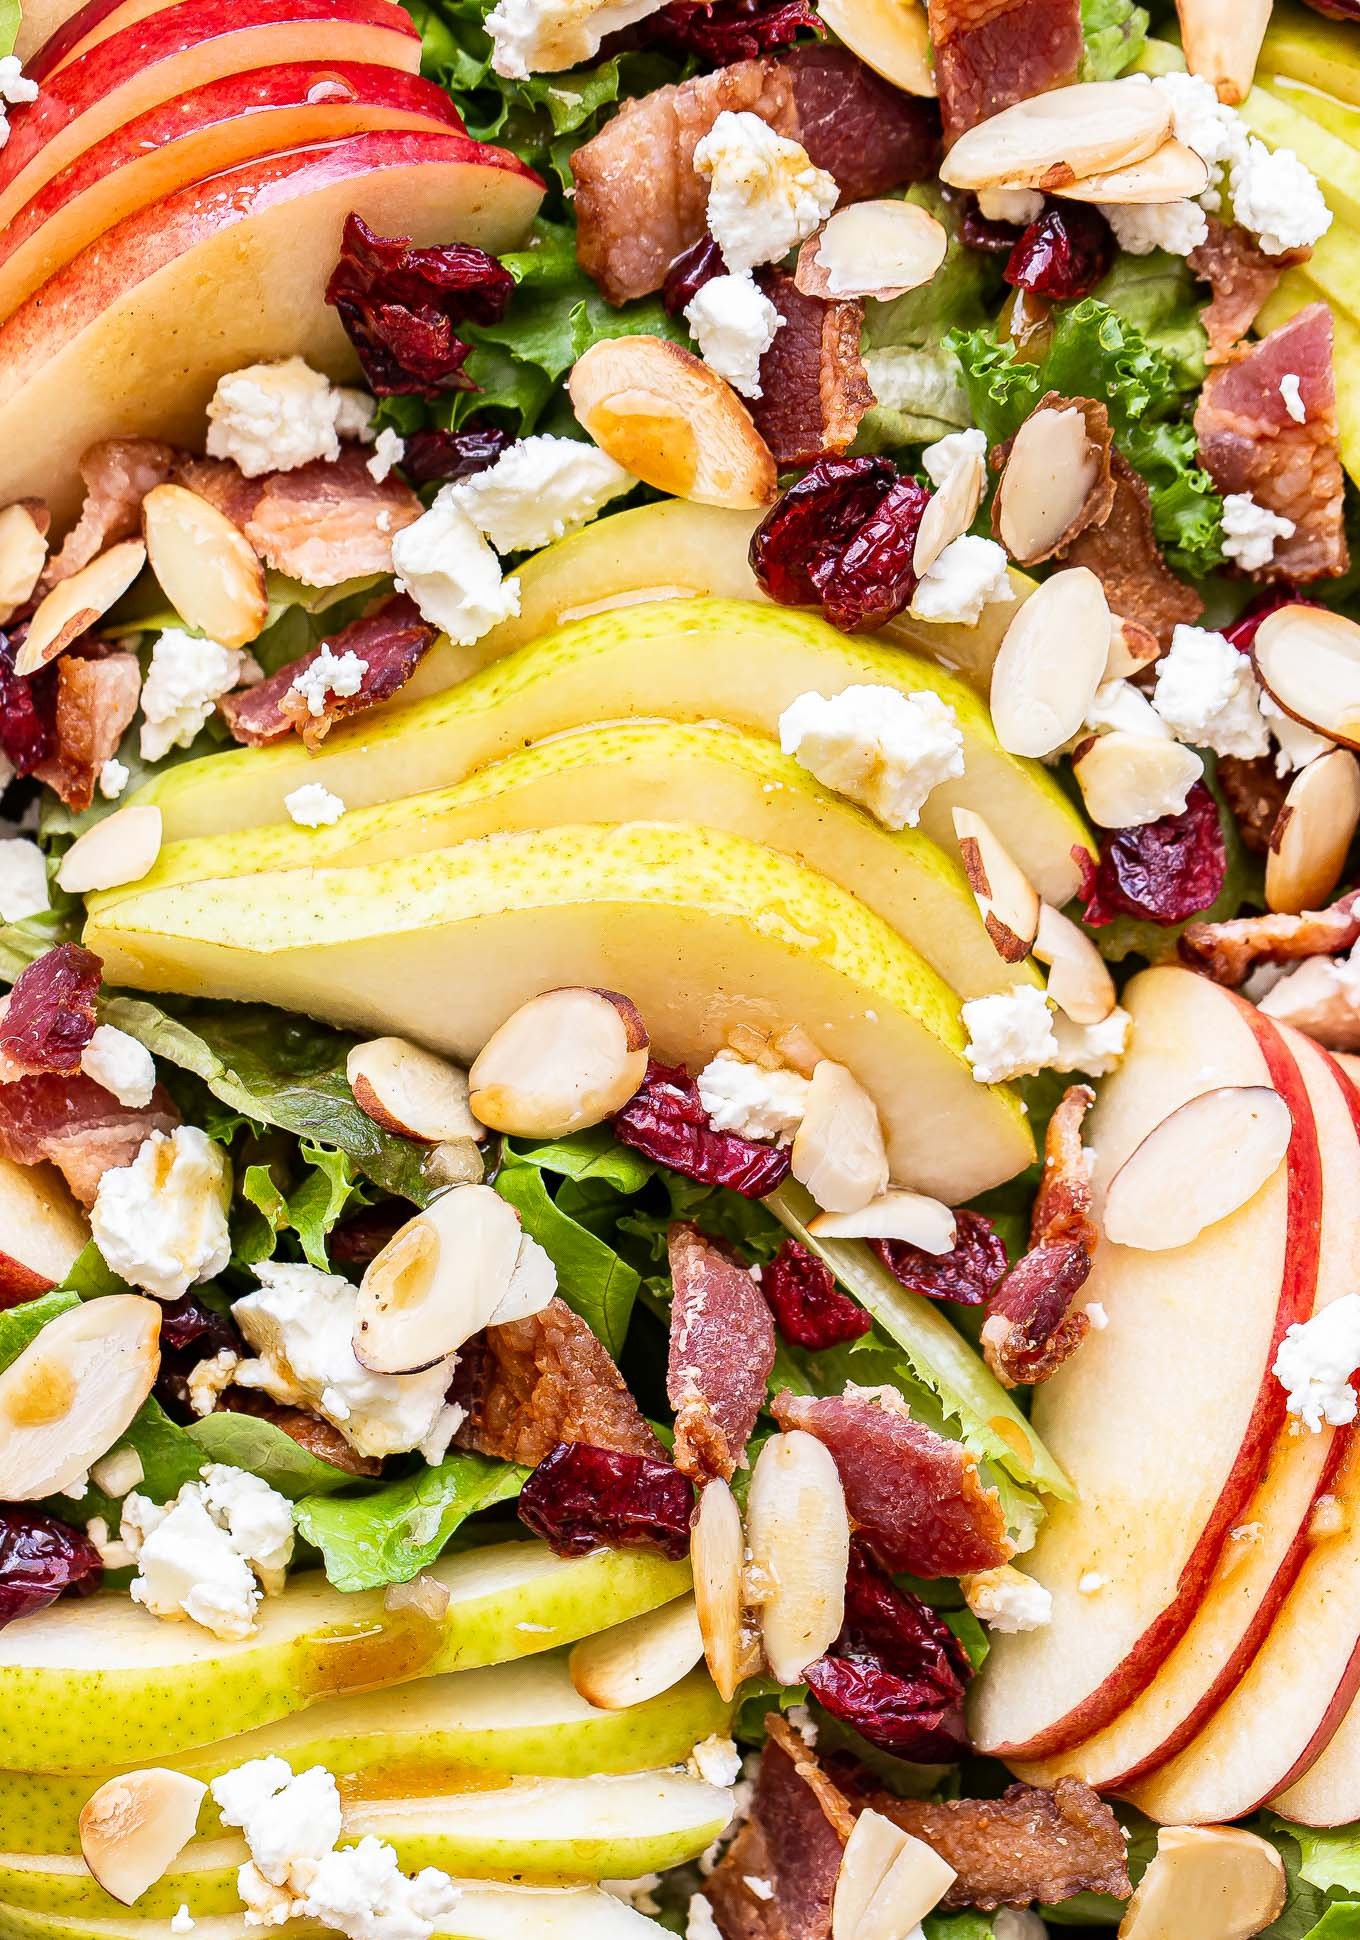 Autumn Apple and Pear Salad with dried cranberries, feta, almonds and bacon.